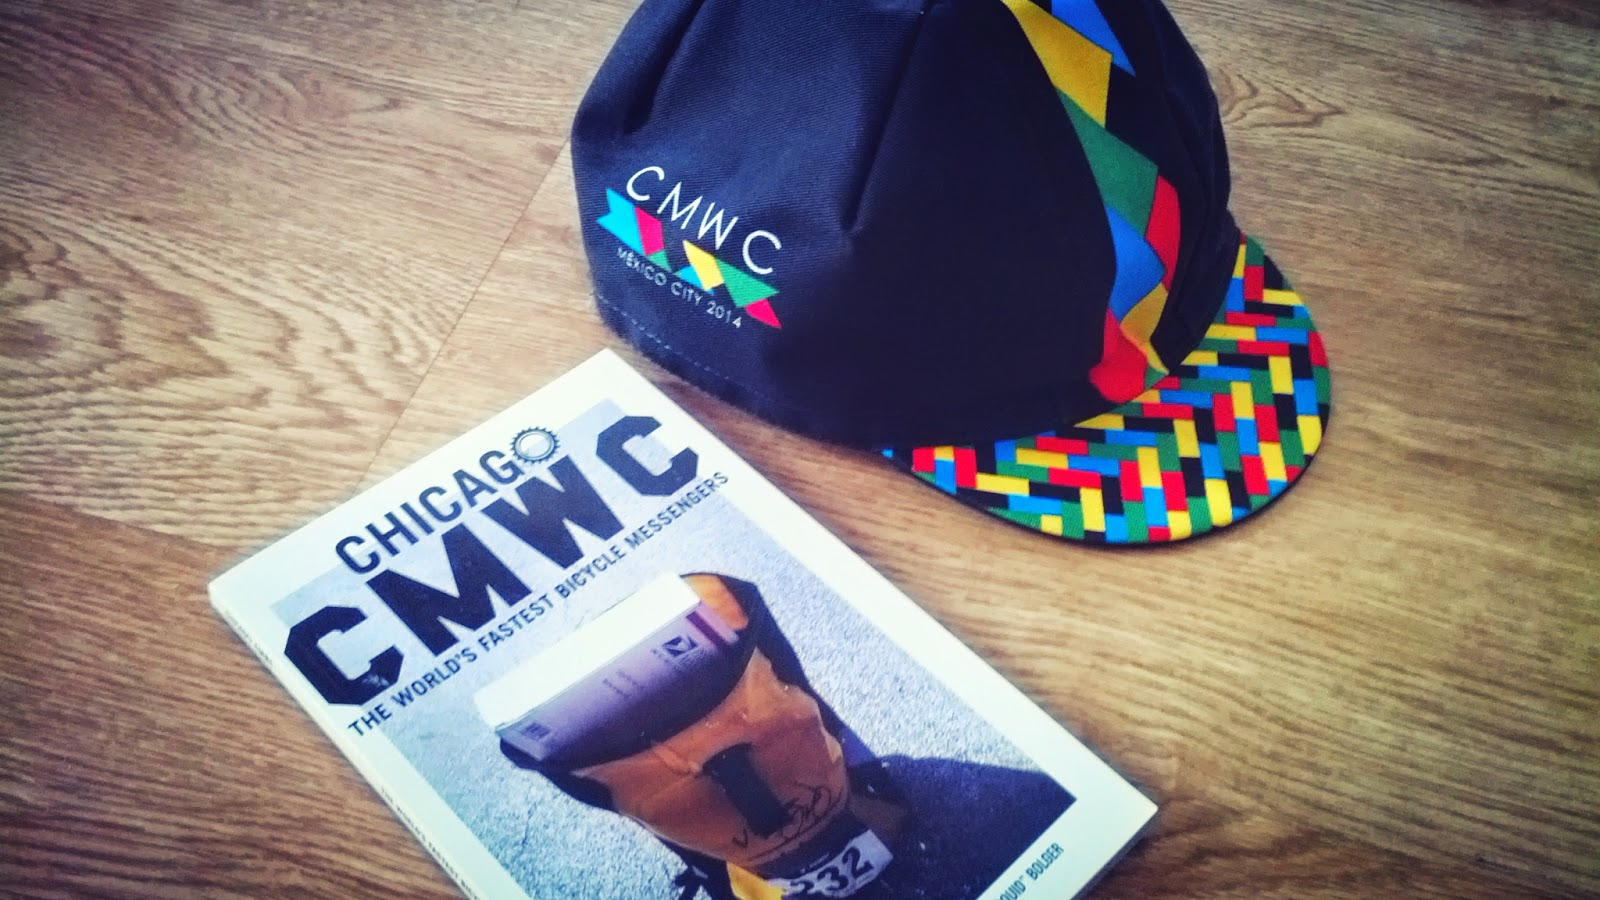 CMWC: Mexico 2014 Cycling cap by Cinelli & Chicago Book